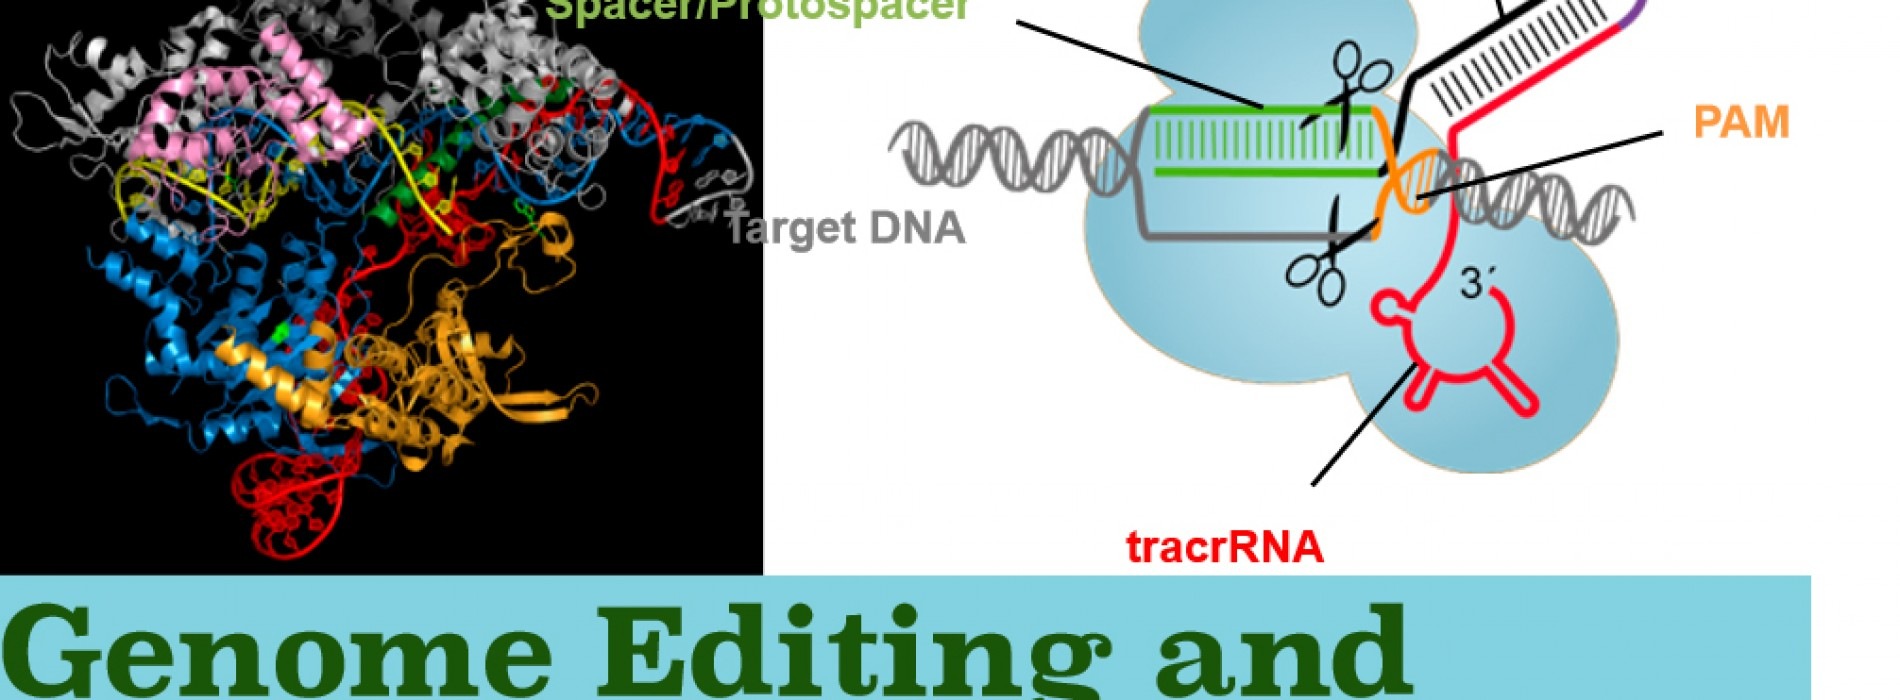 Genome Editing and Synthetic Biology